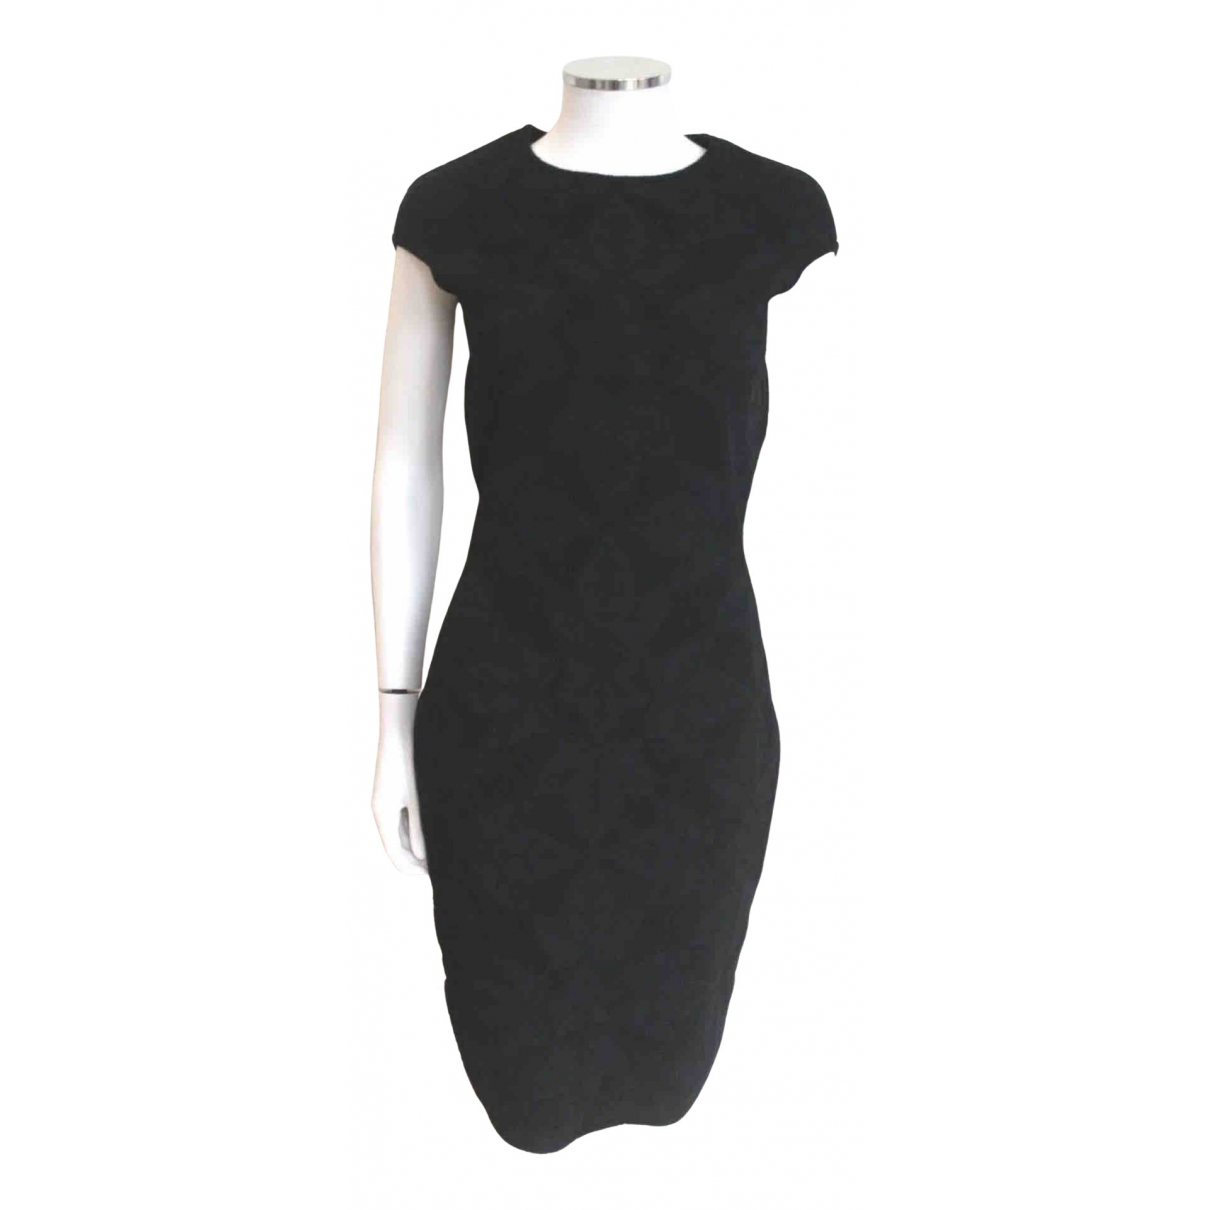 Alexander Mcqueen N Black Wool dress for Women L International